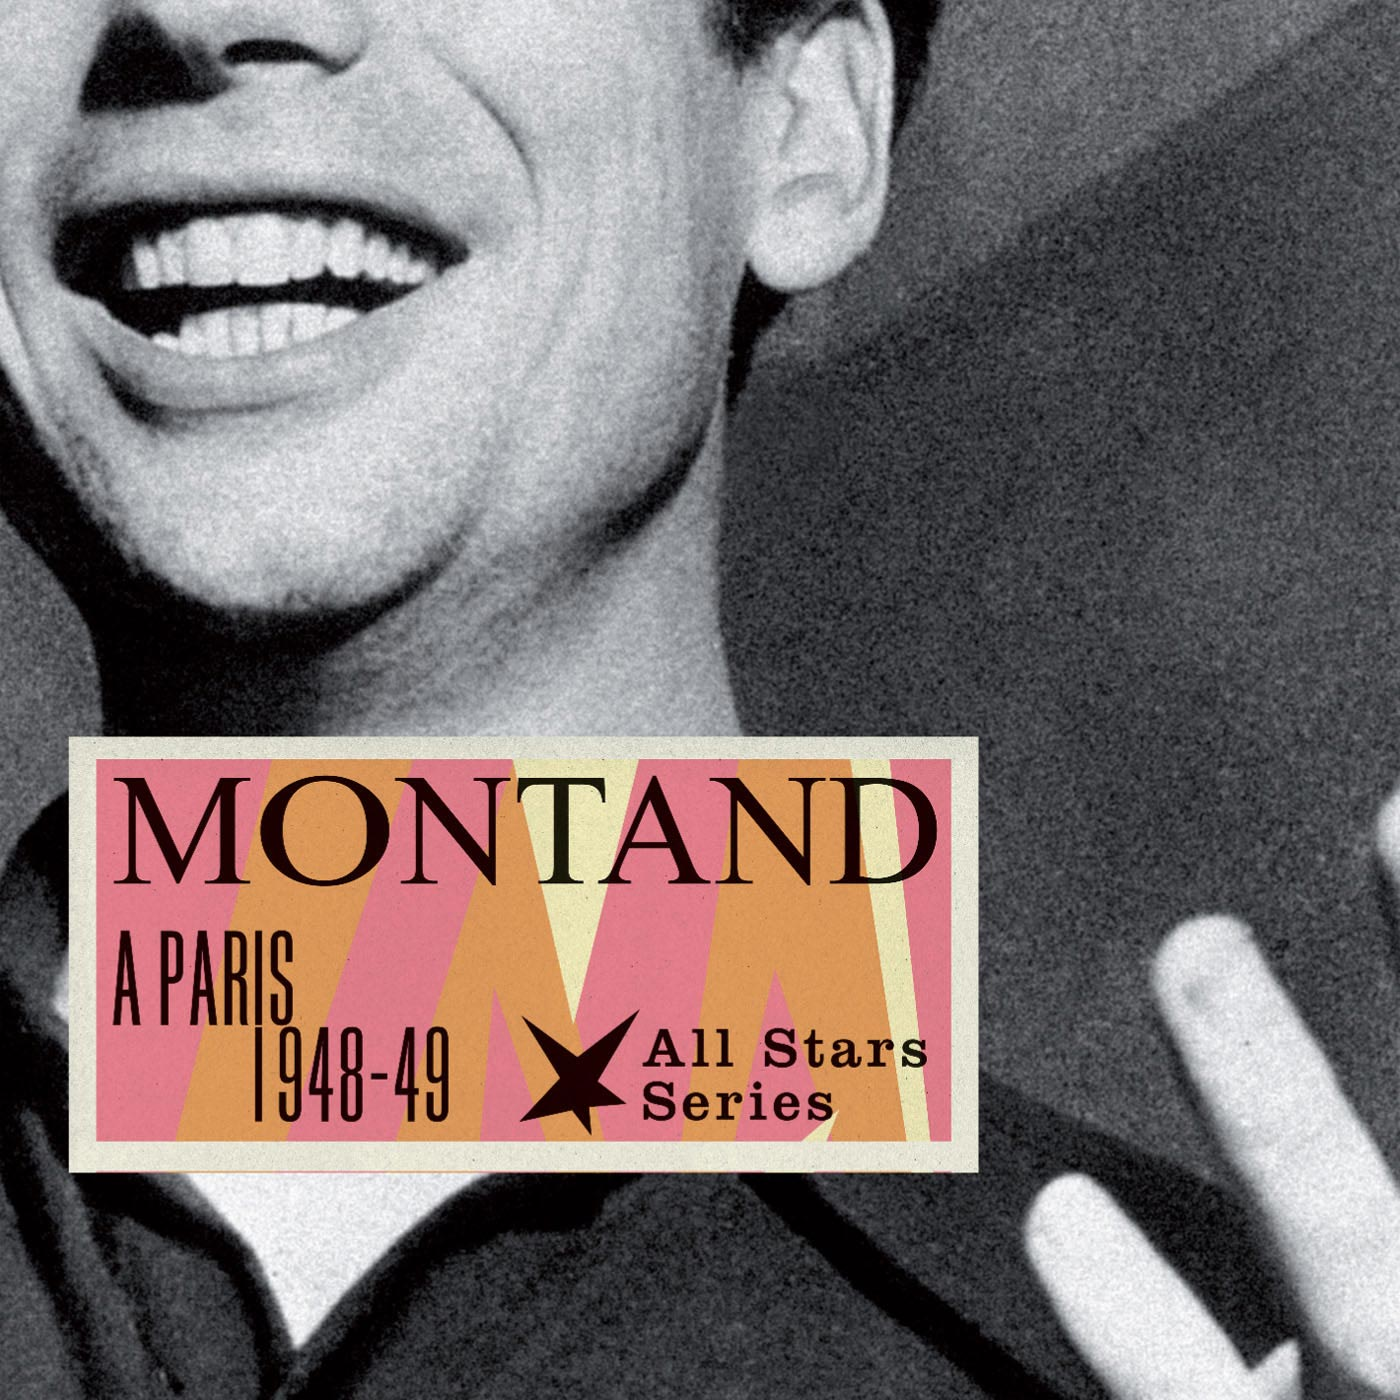 A Paris 1948-49 by Yves Montand cover